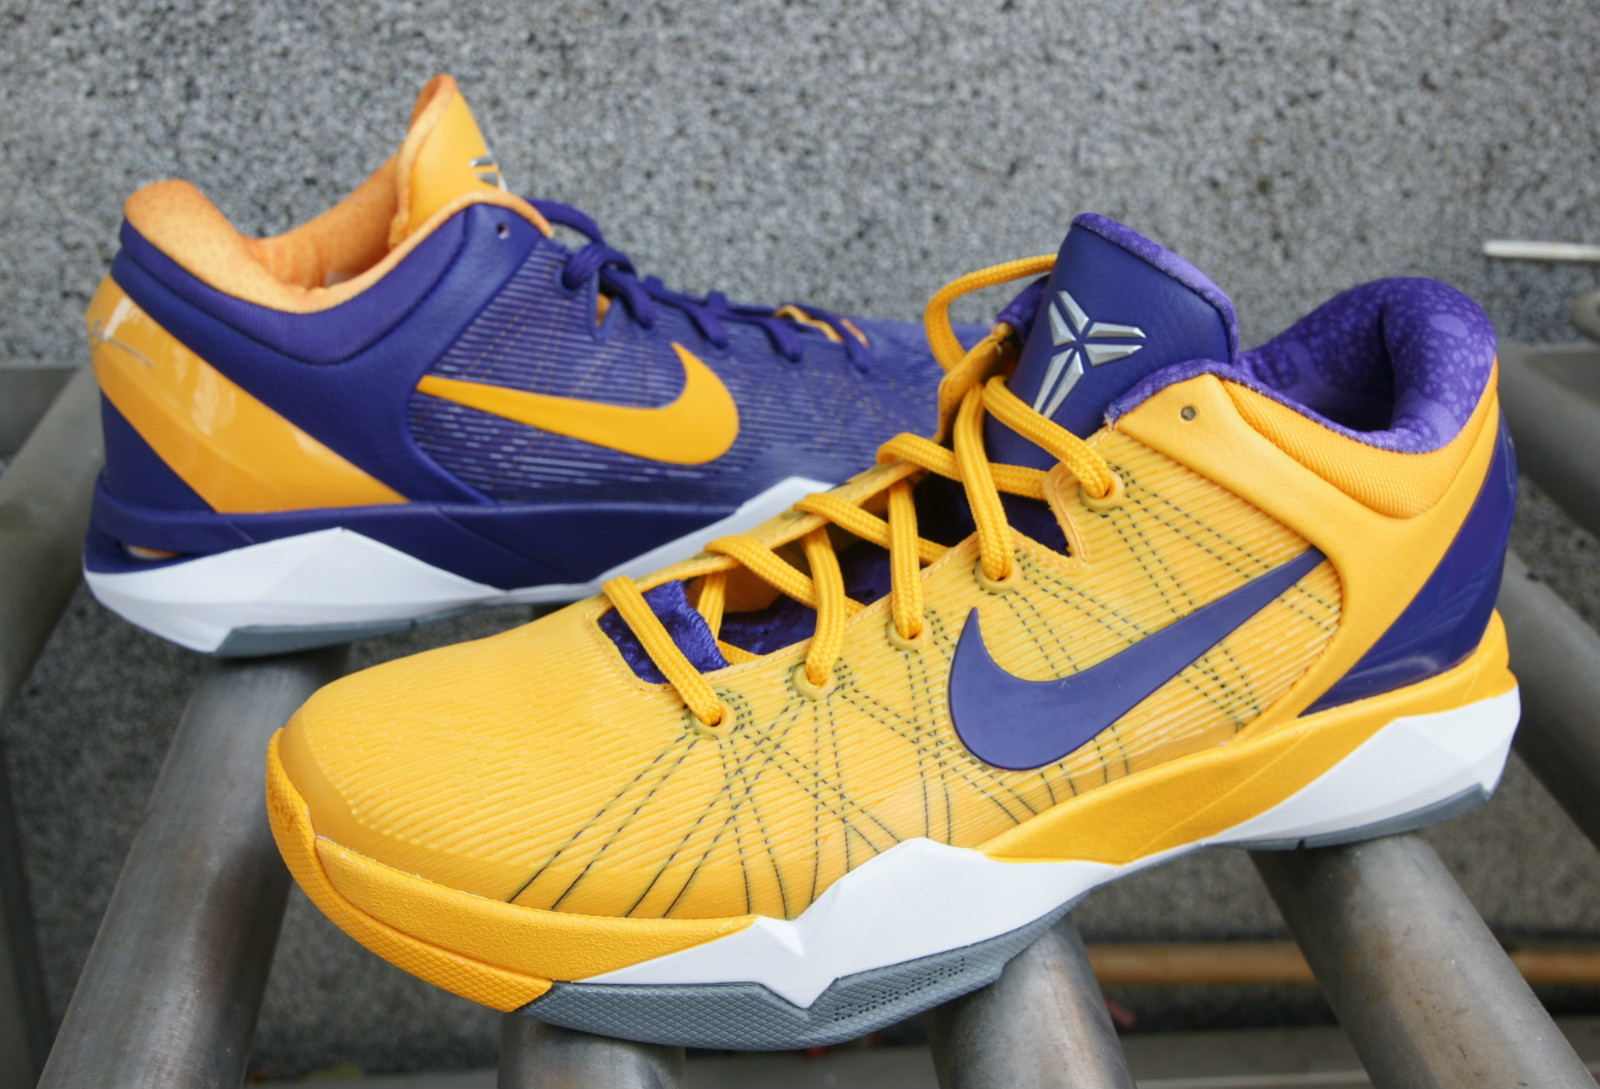 ee7de64bd0ae ... canada nike zoom kobe vii court purple university gold white cool grey  488370 500 11 17